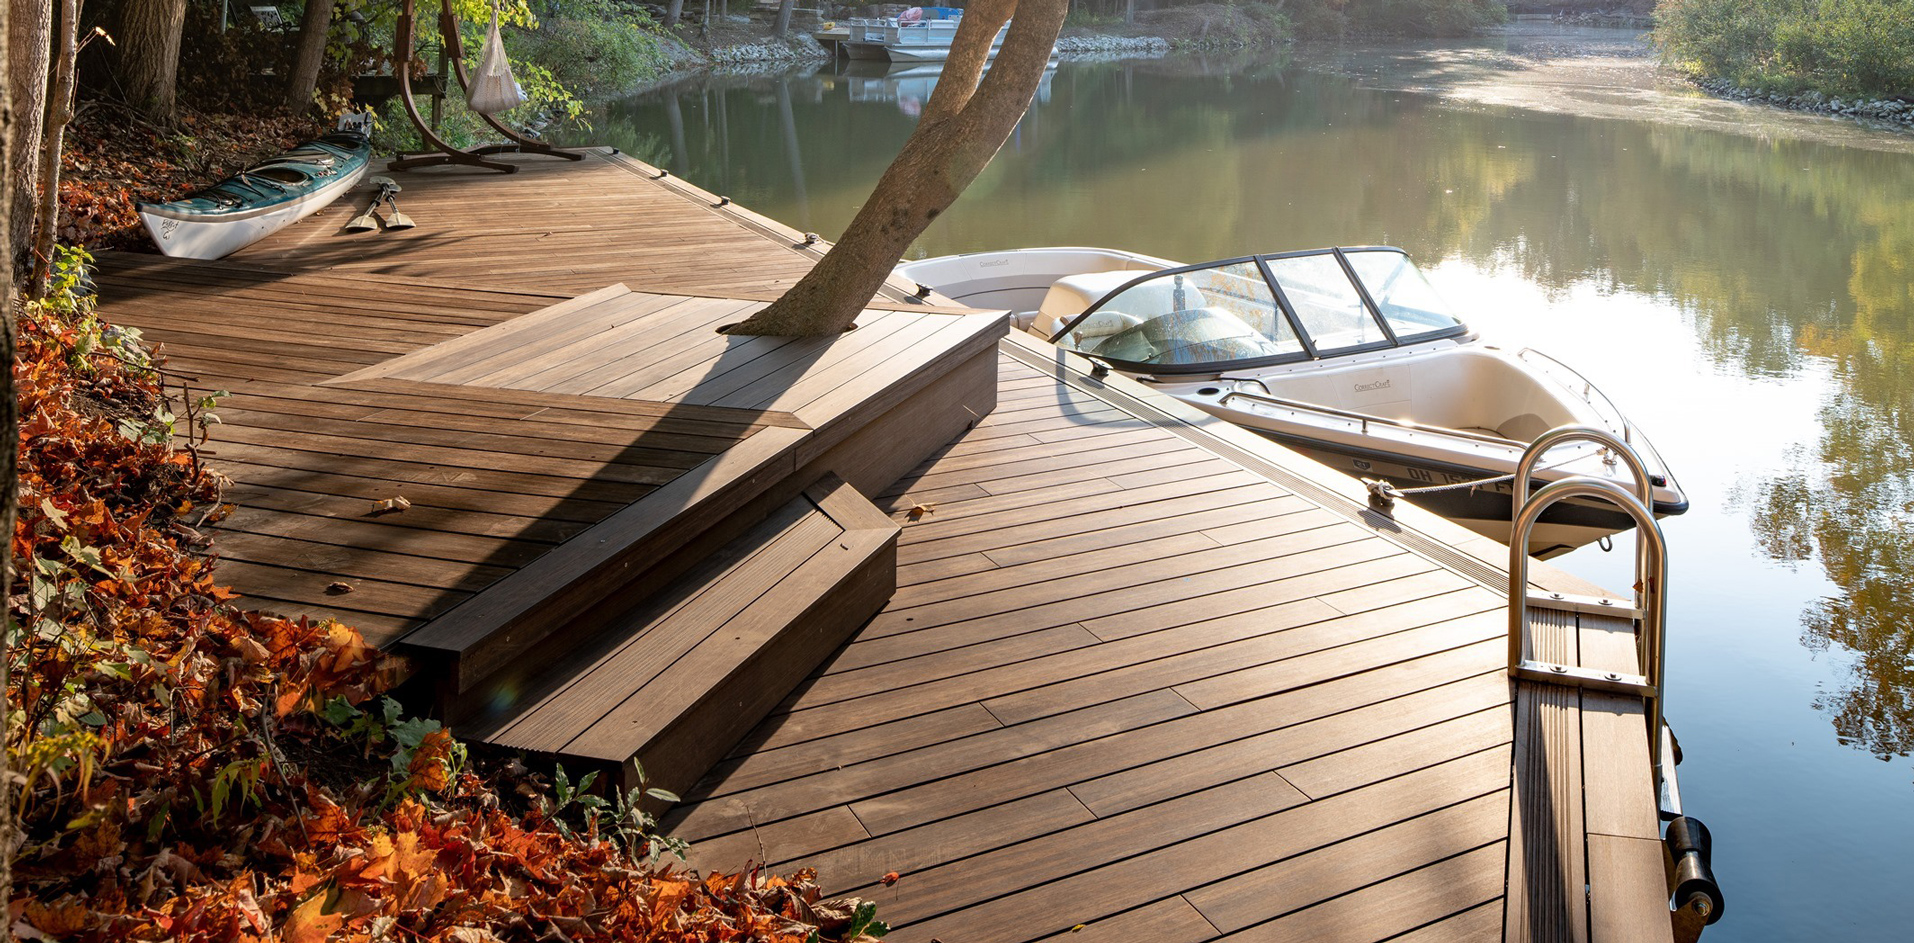 Bamboo decking in a dock